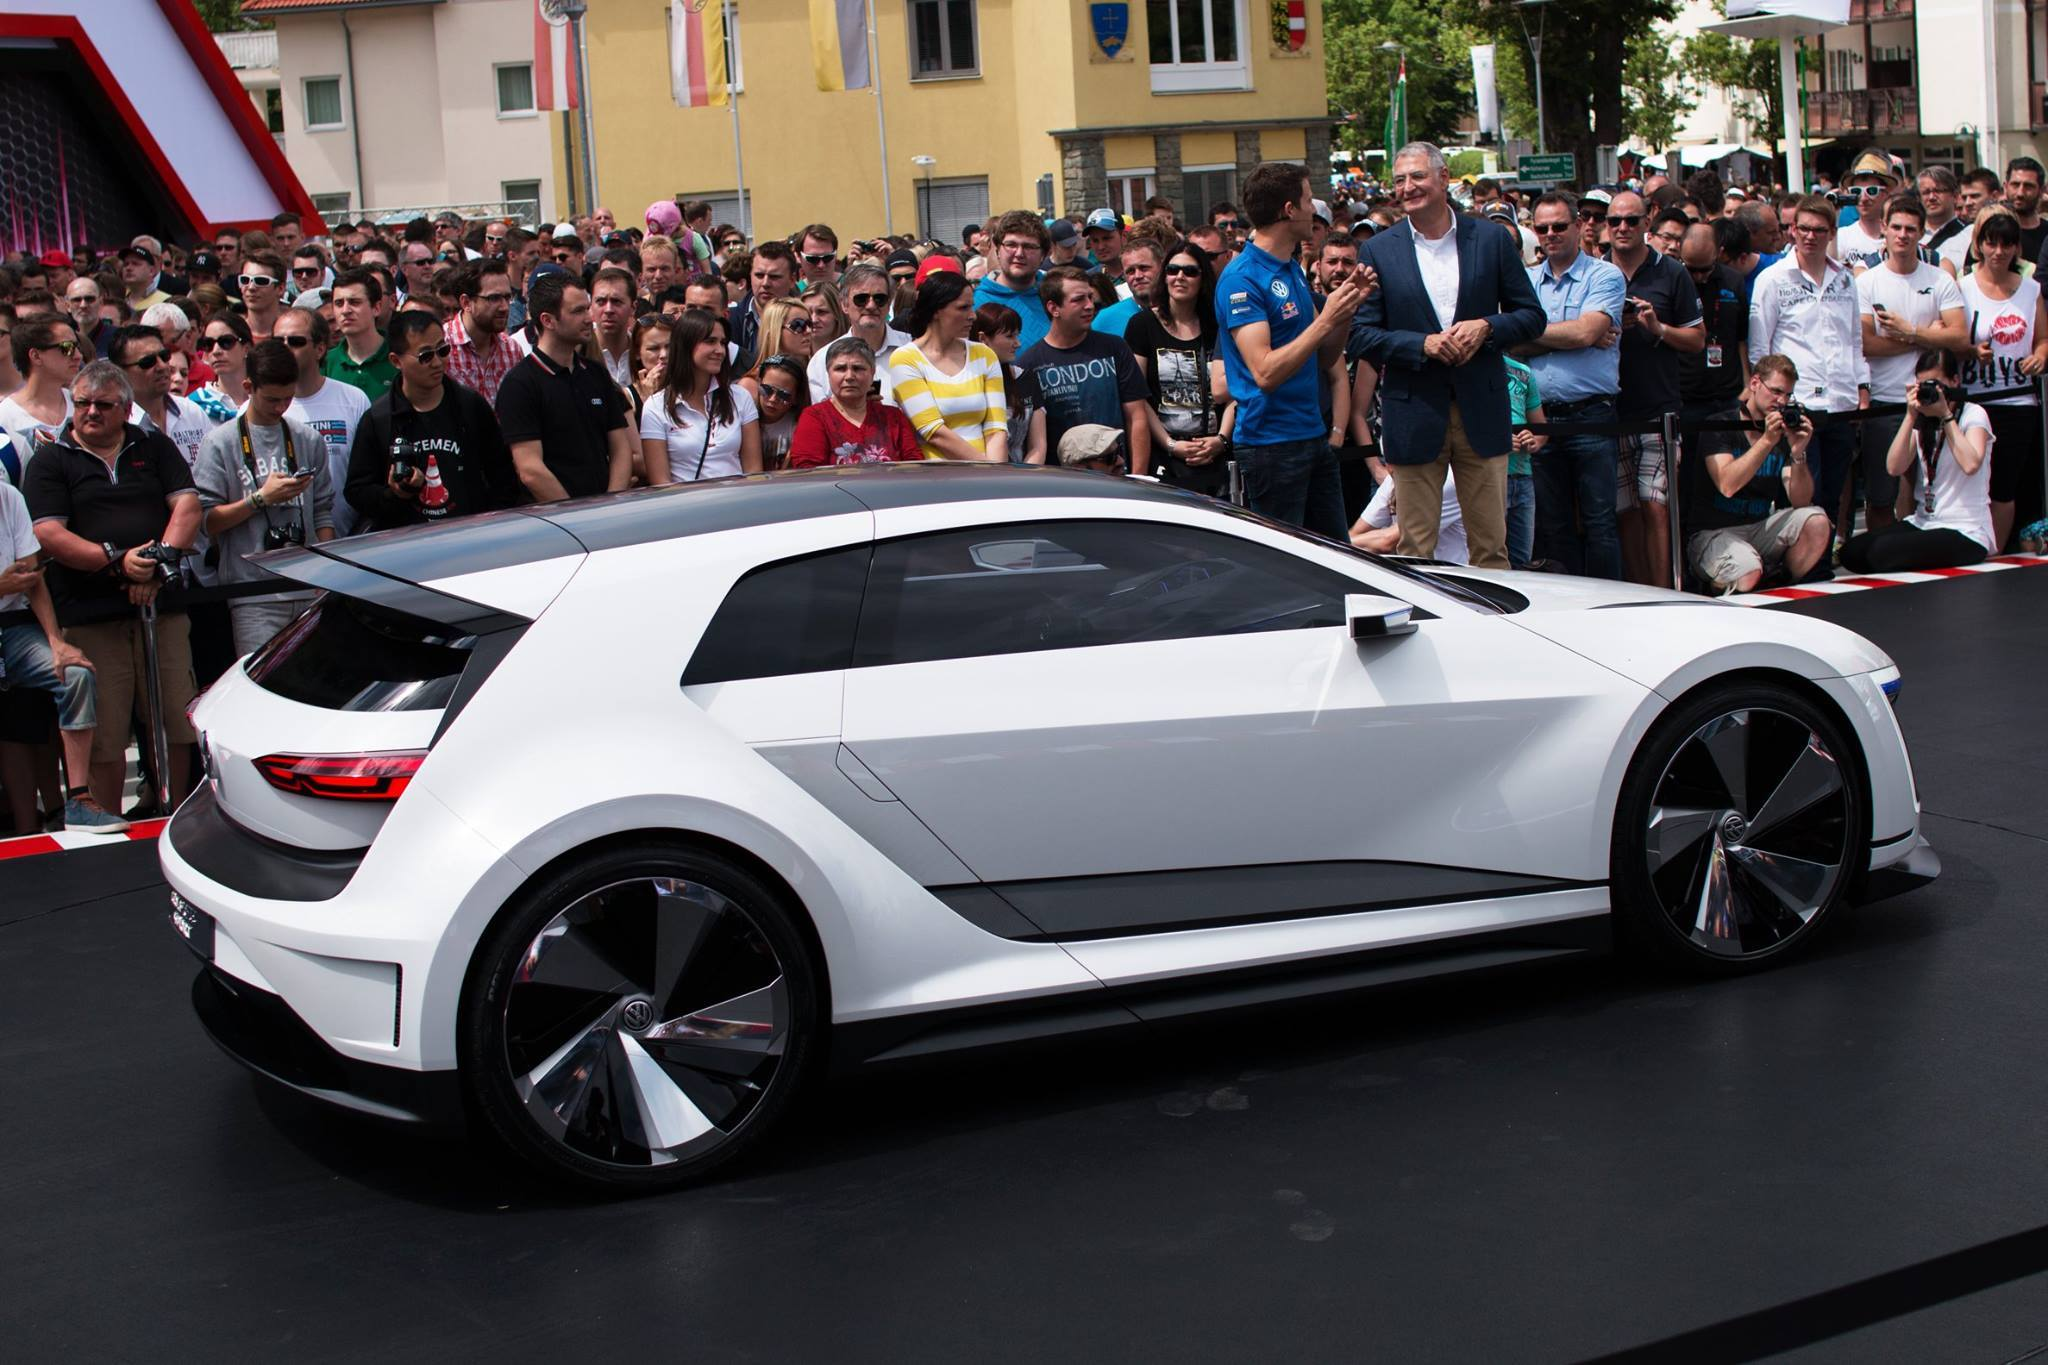 Volkswagen Gti Roadster 2018 >> Next Golf GTI Coming in 2019, Will Be Lighter, Have More Tech Features - autoevolution